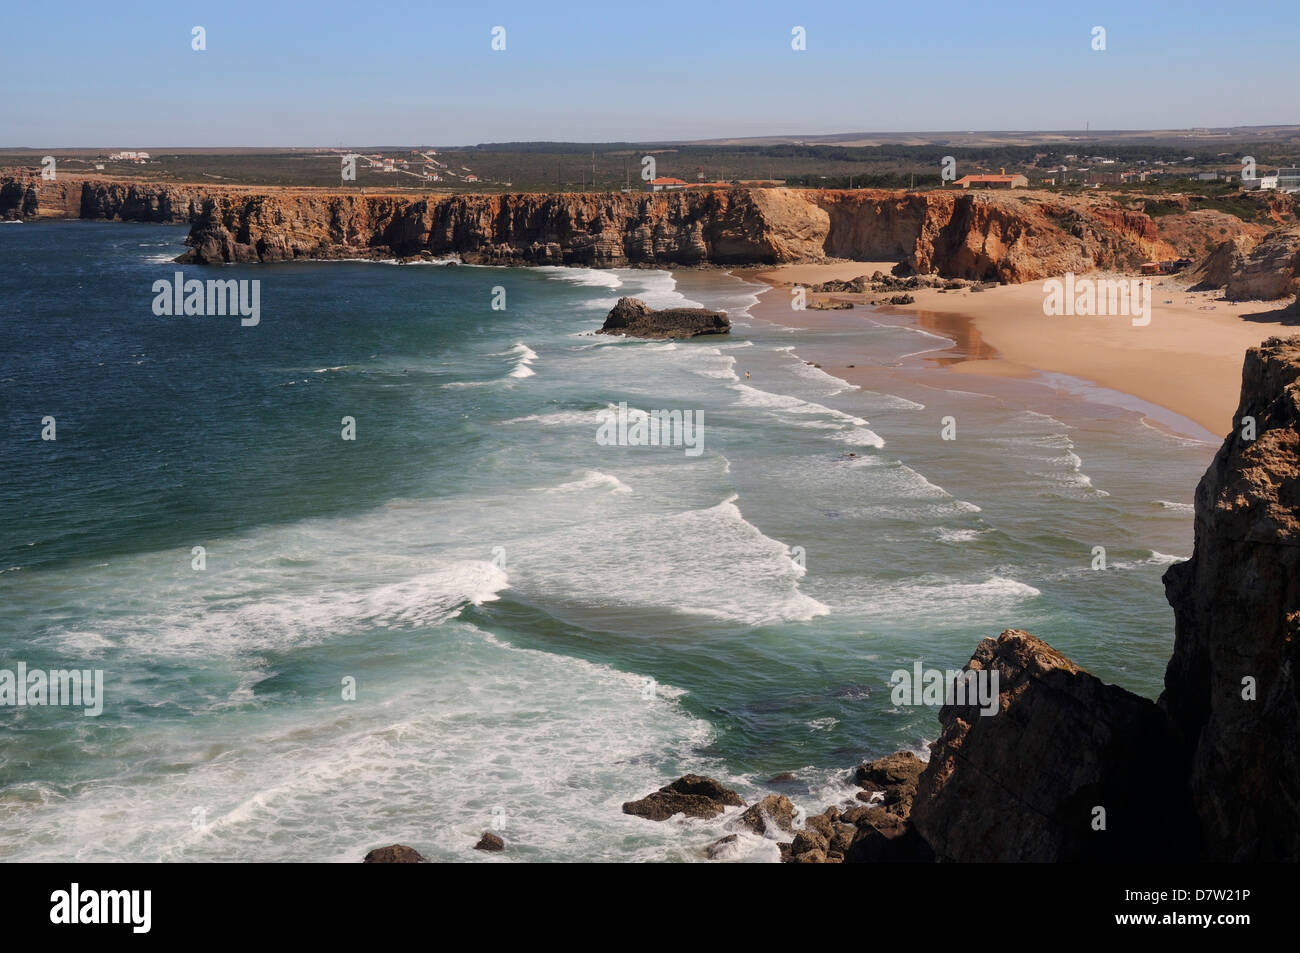 Praia do Tonel beach viewed from Sagres fort (Fortaleza de Sagres), Ponta de Sagres, Algarve, Portugal - Stock Image